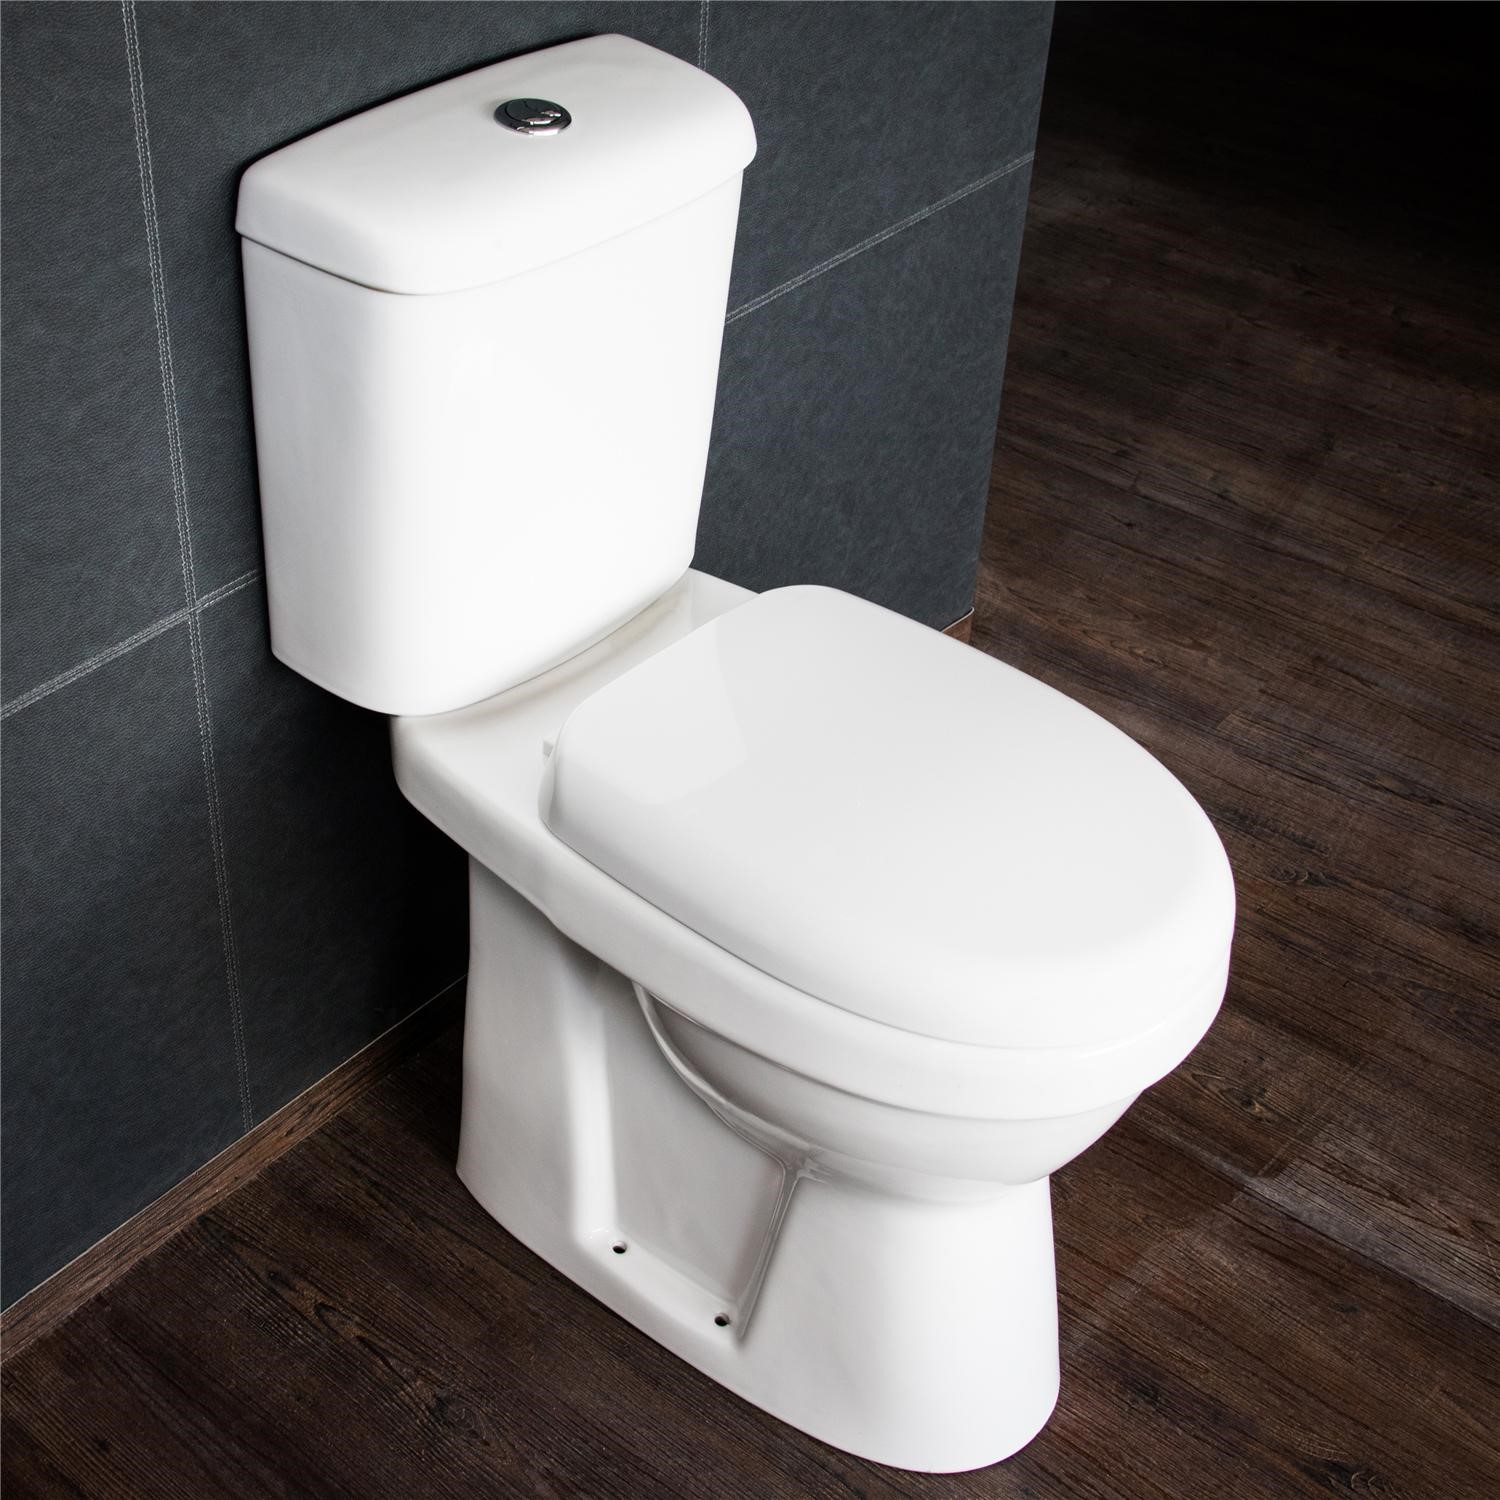 Outstanding Comfort Height Close Couple Toilet With Soft Close Seat Creativecarmelina Interior Chair Design Creativecarmelinacom